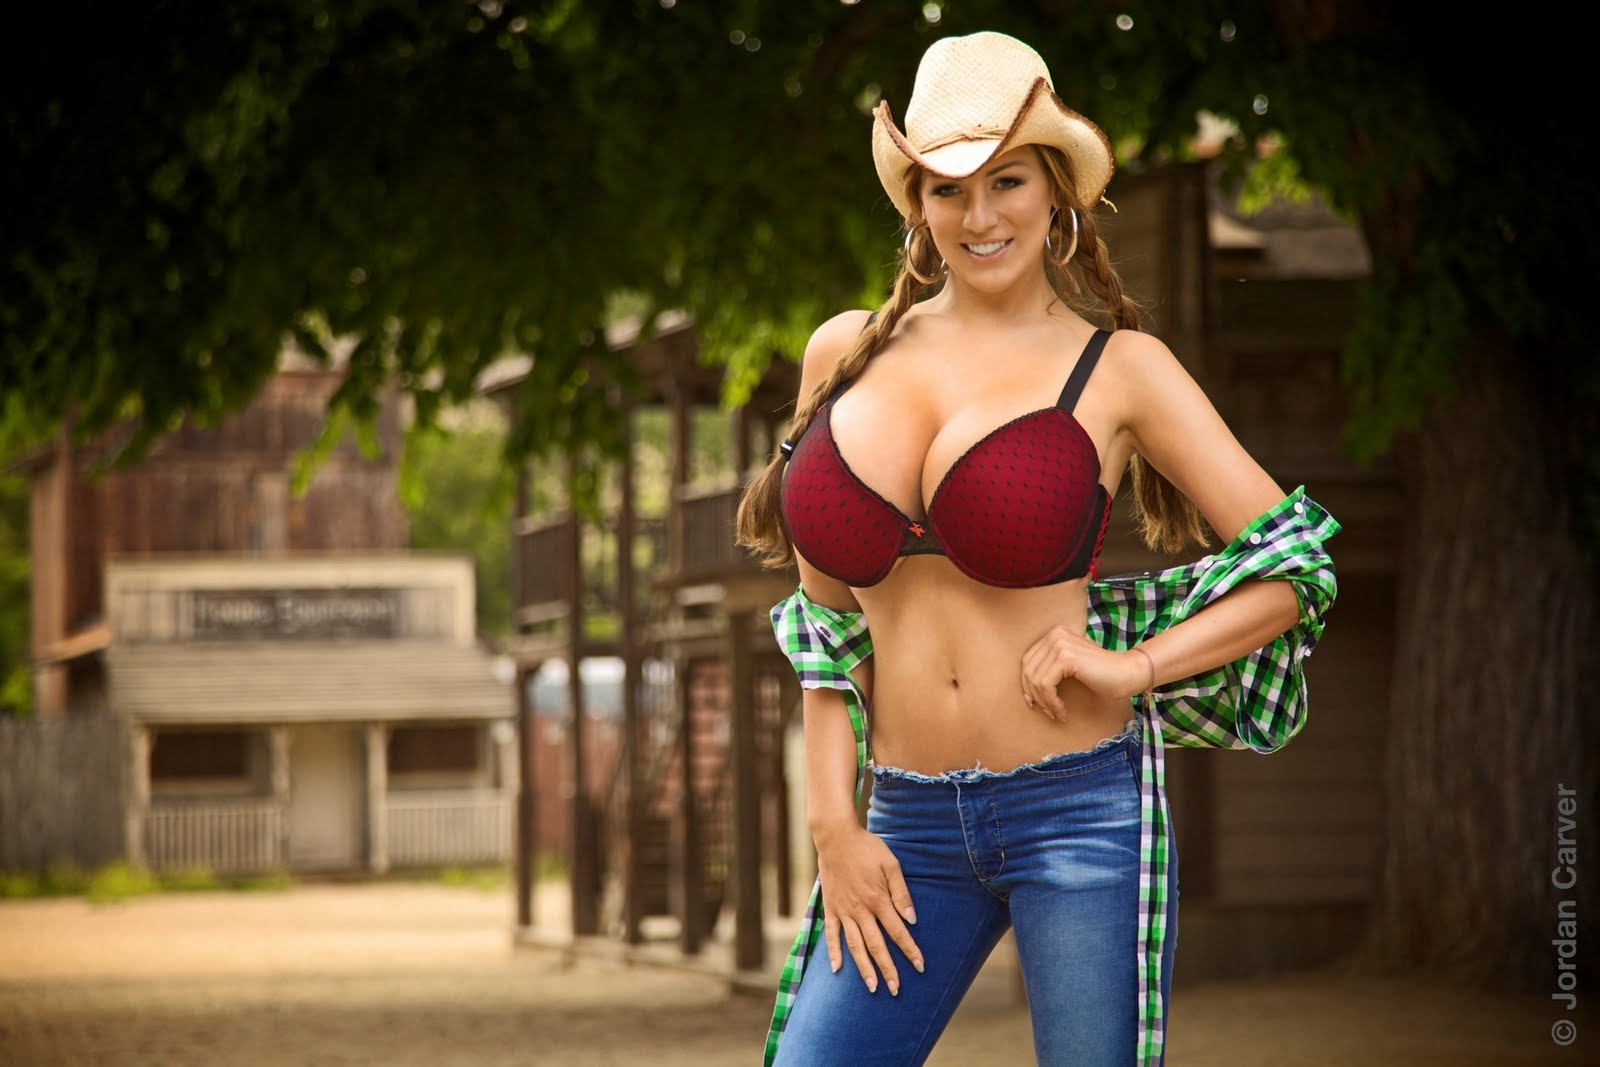 Jordan+Carver+cowgirl+photoshoot+(9).jpg